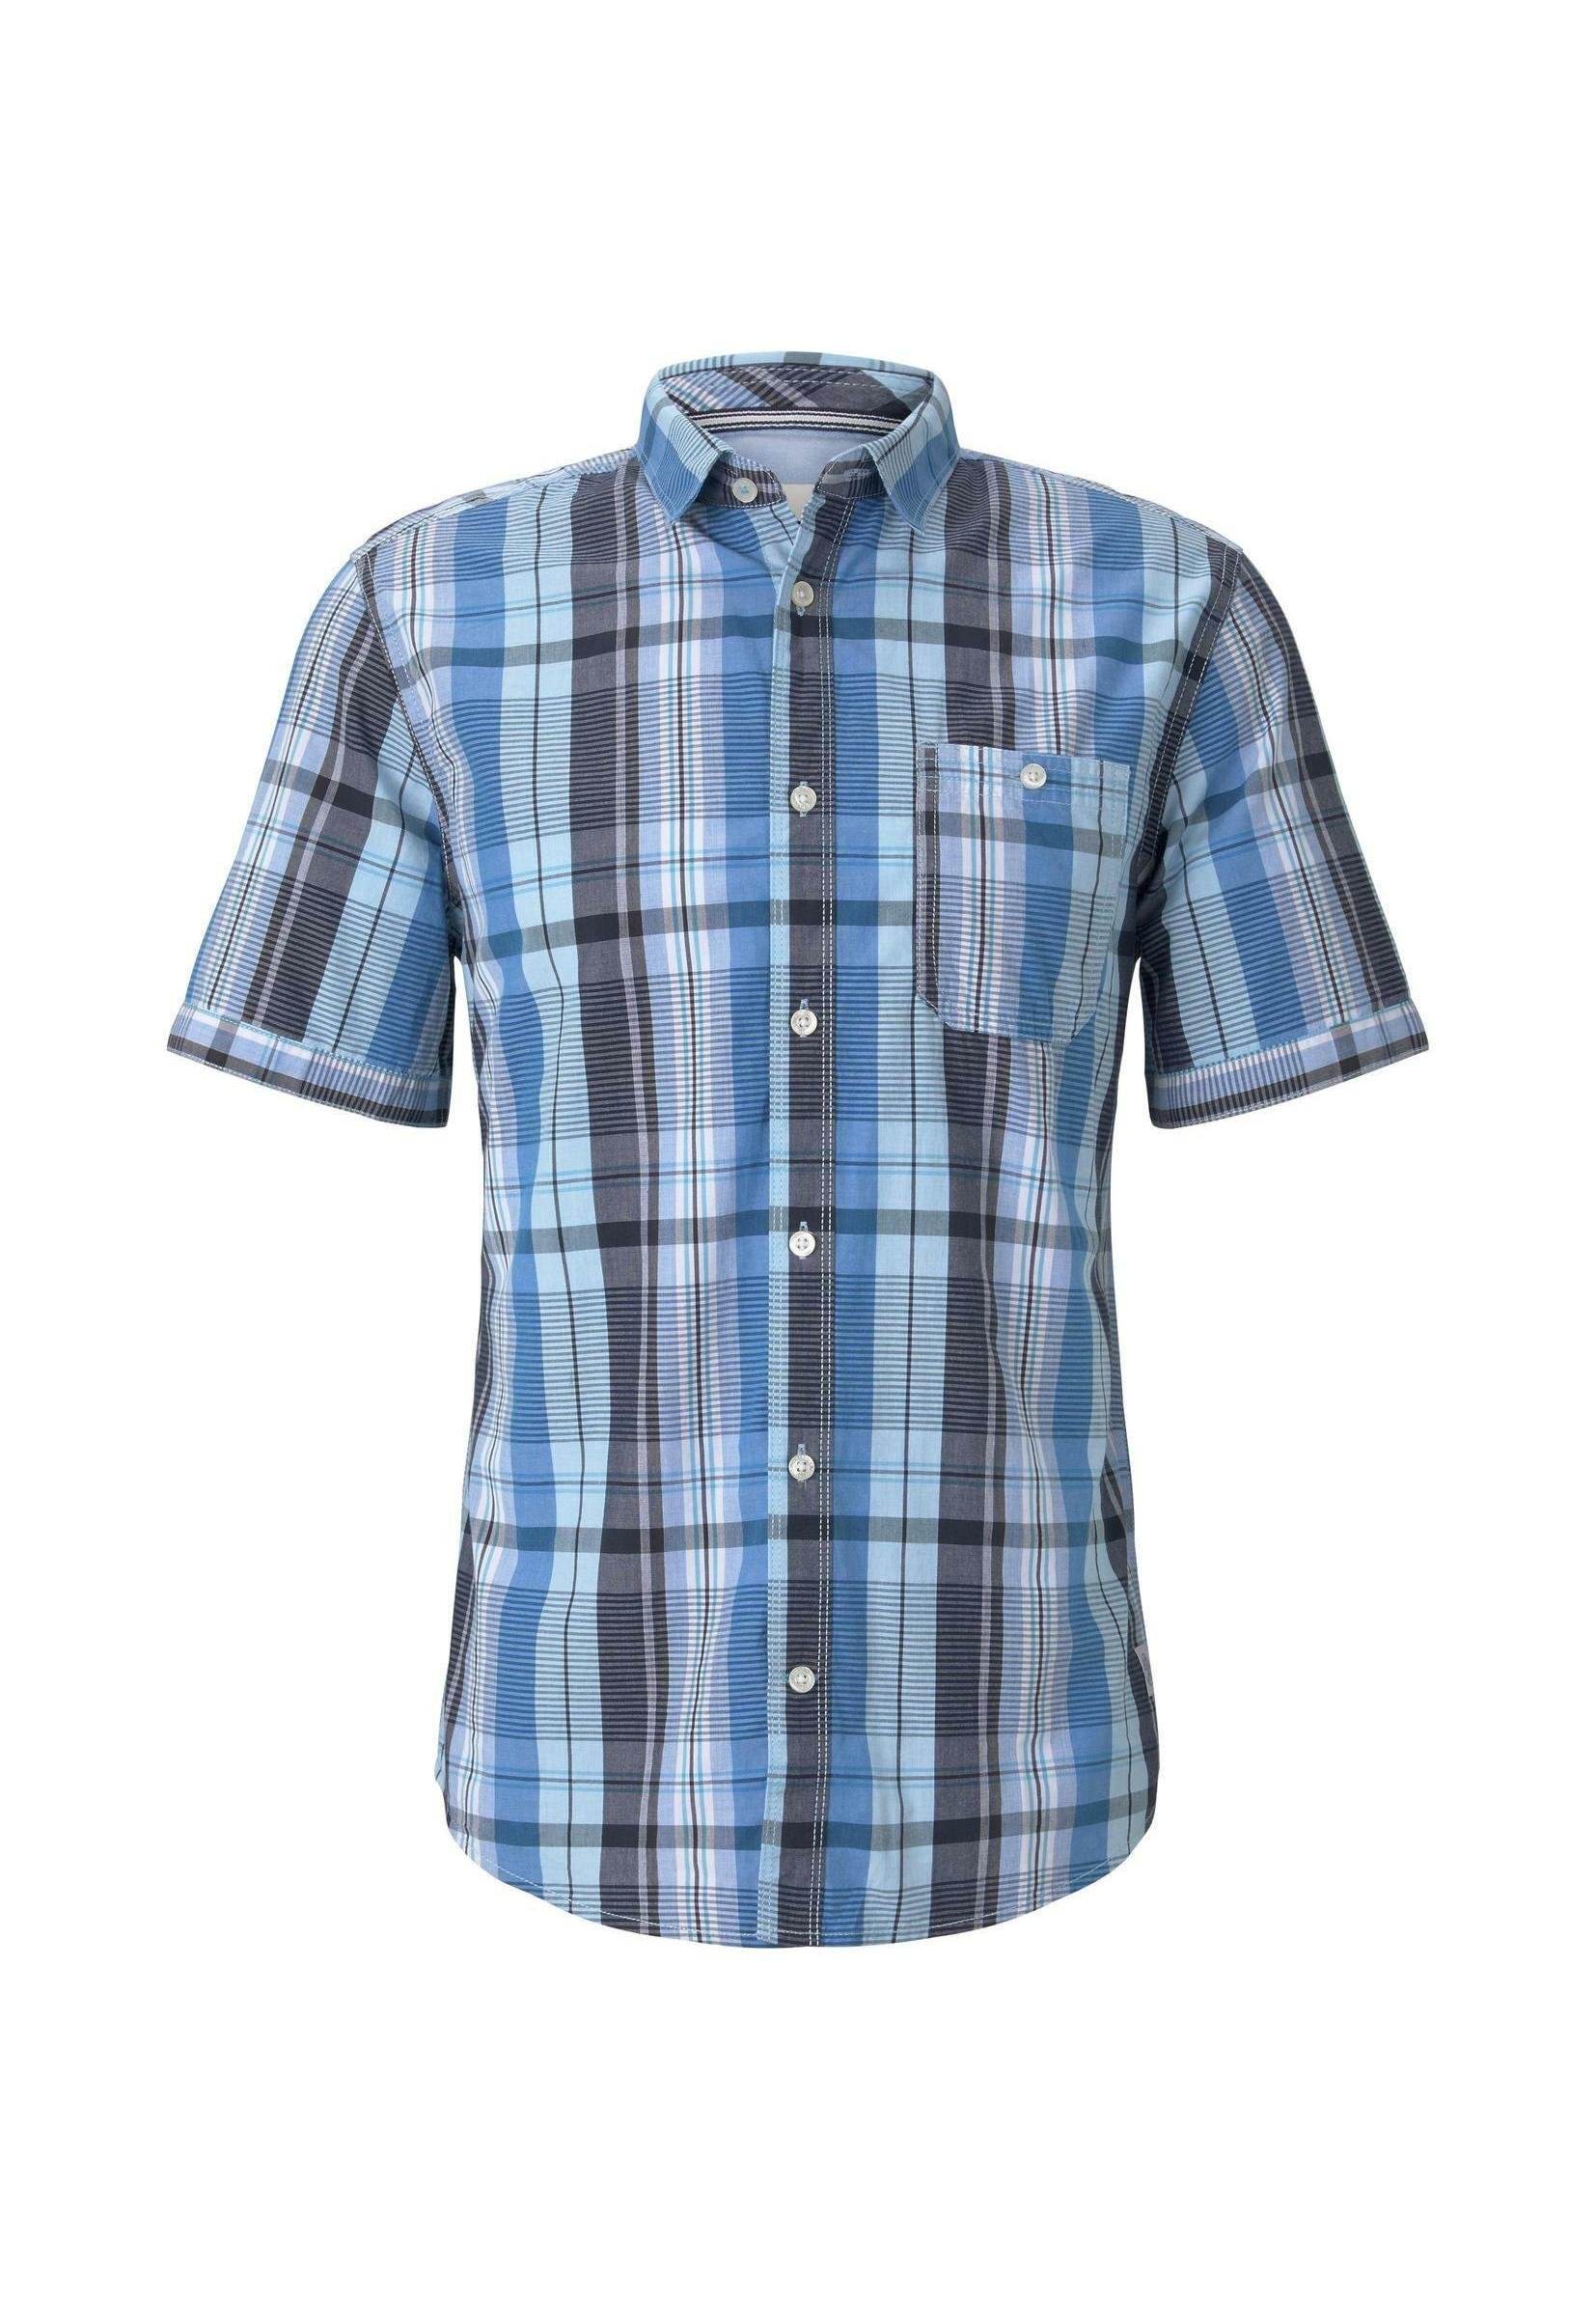 Tom Tailor Chemise - Blue Shades Colourful Check HS0gZSY